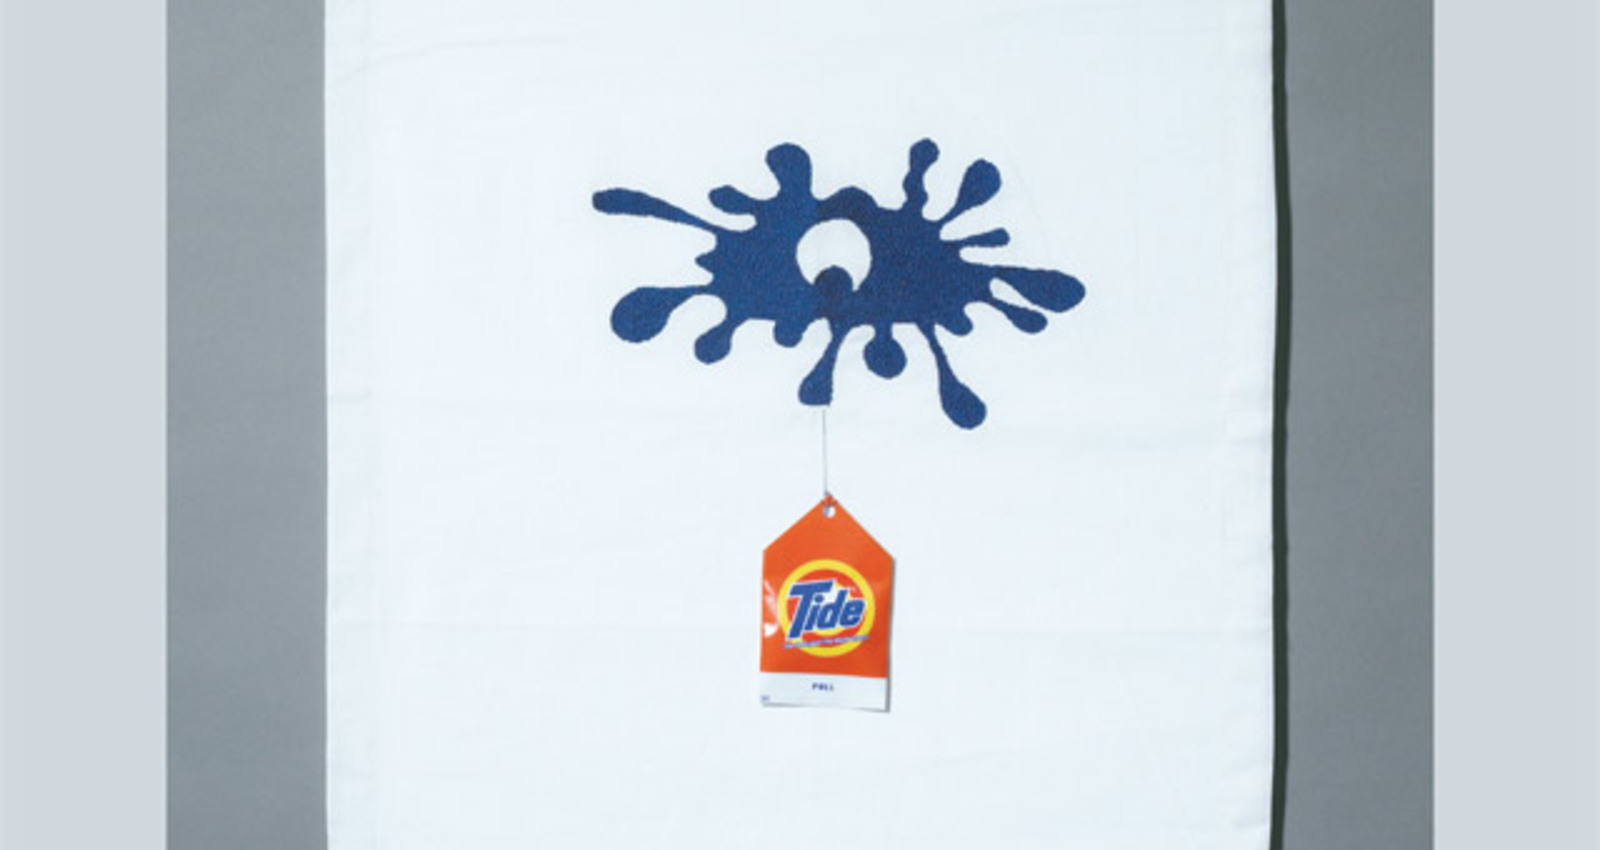 Tide: Stainbroidery